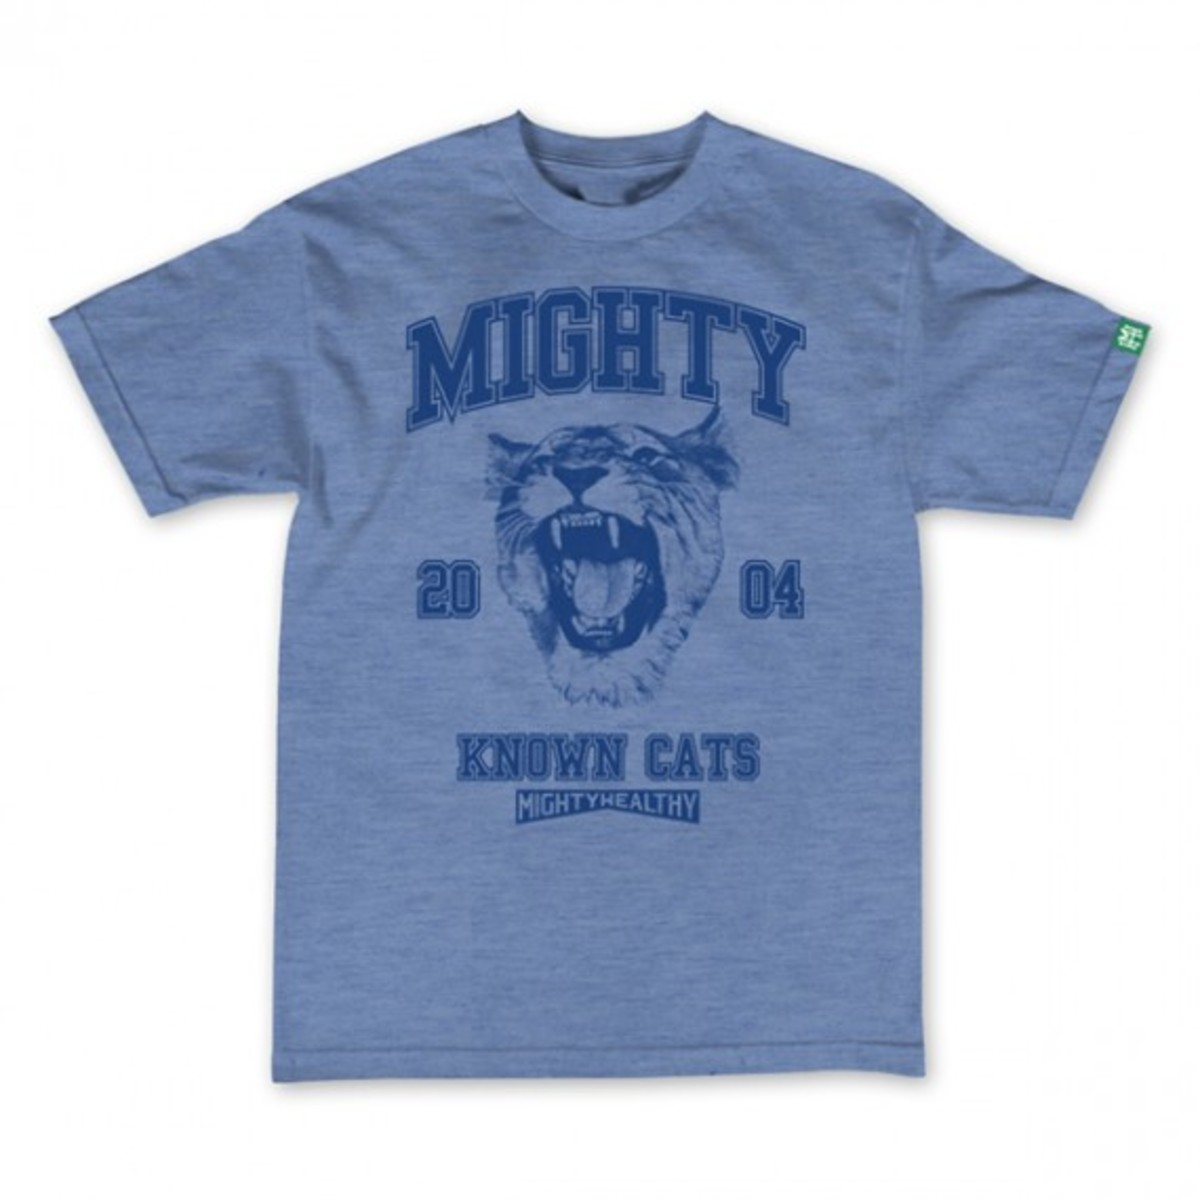 mighty-healthy-summer-2012-t-shirt-collection-20